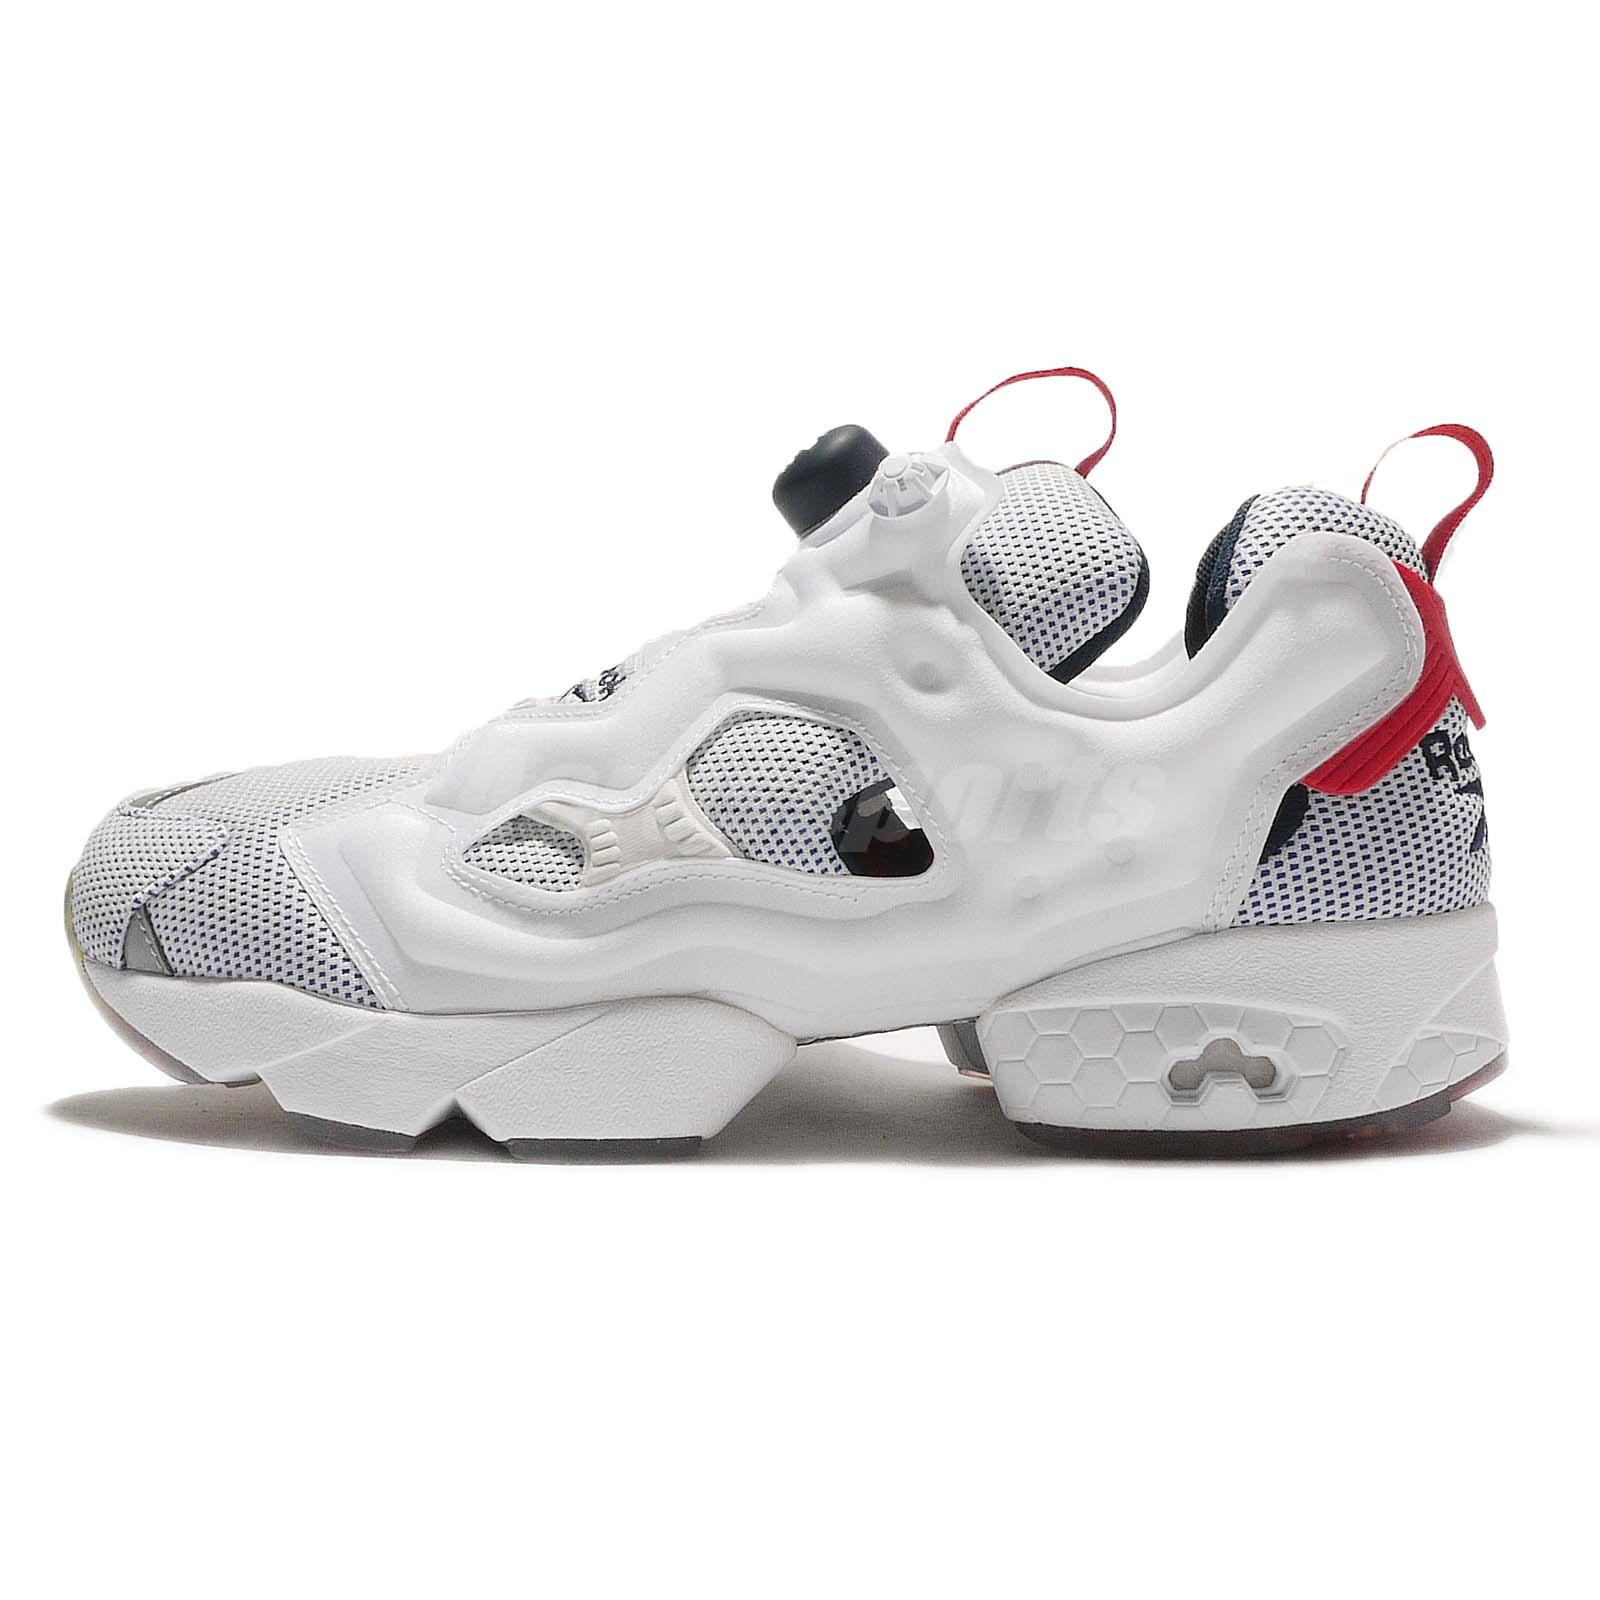 Shop authentic Reebok Shoes. dufucomekiguki.ga has the latest Reebok releases, including Reebok Classic, Reebok Pump, Reebok Zig, Reebok Basketball .